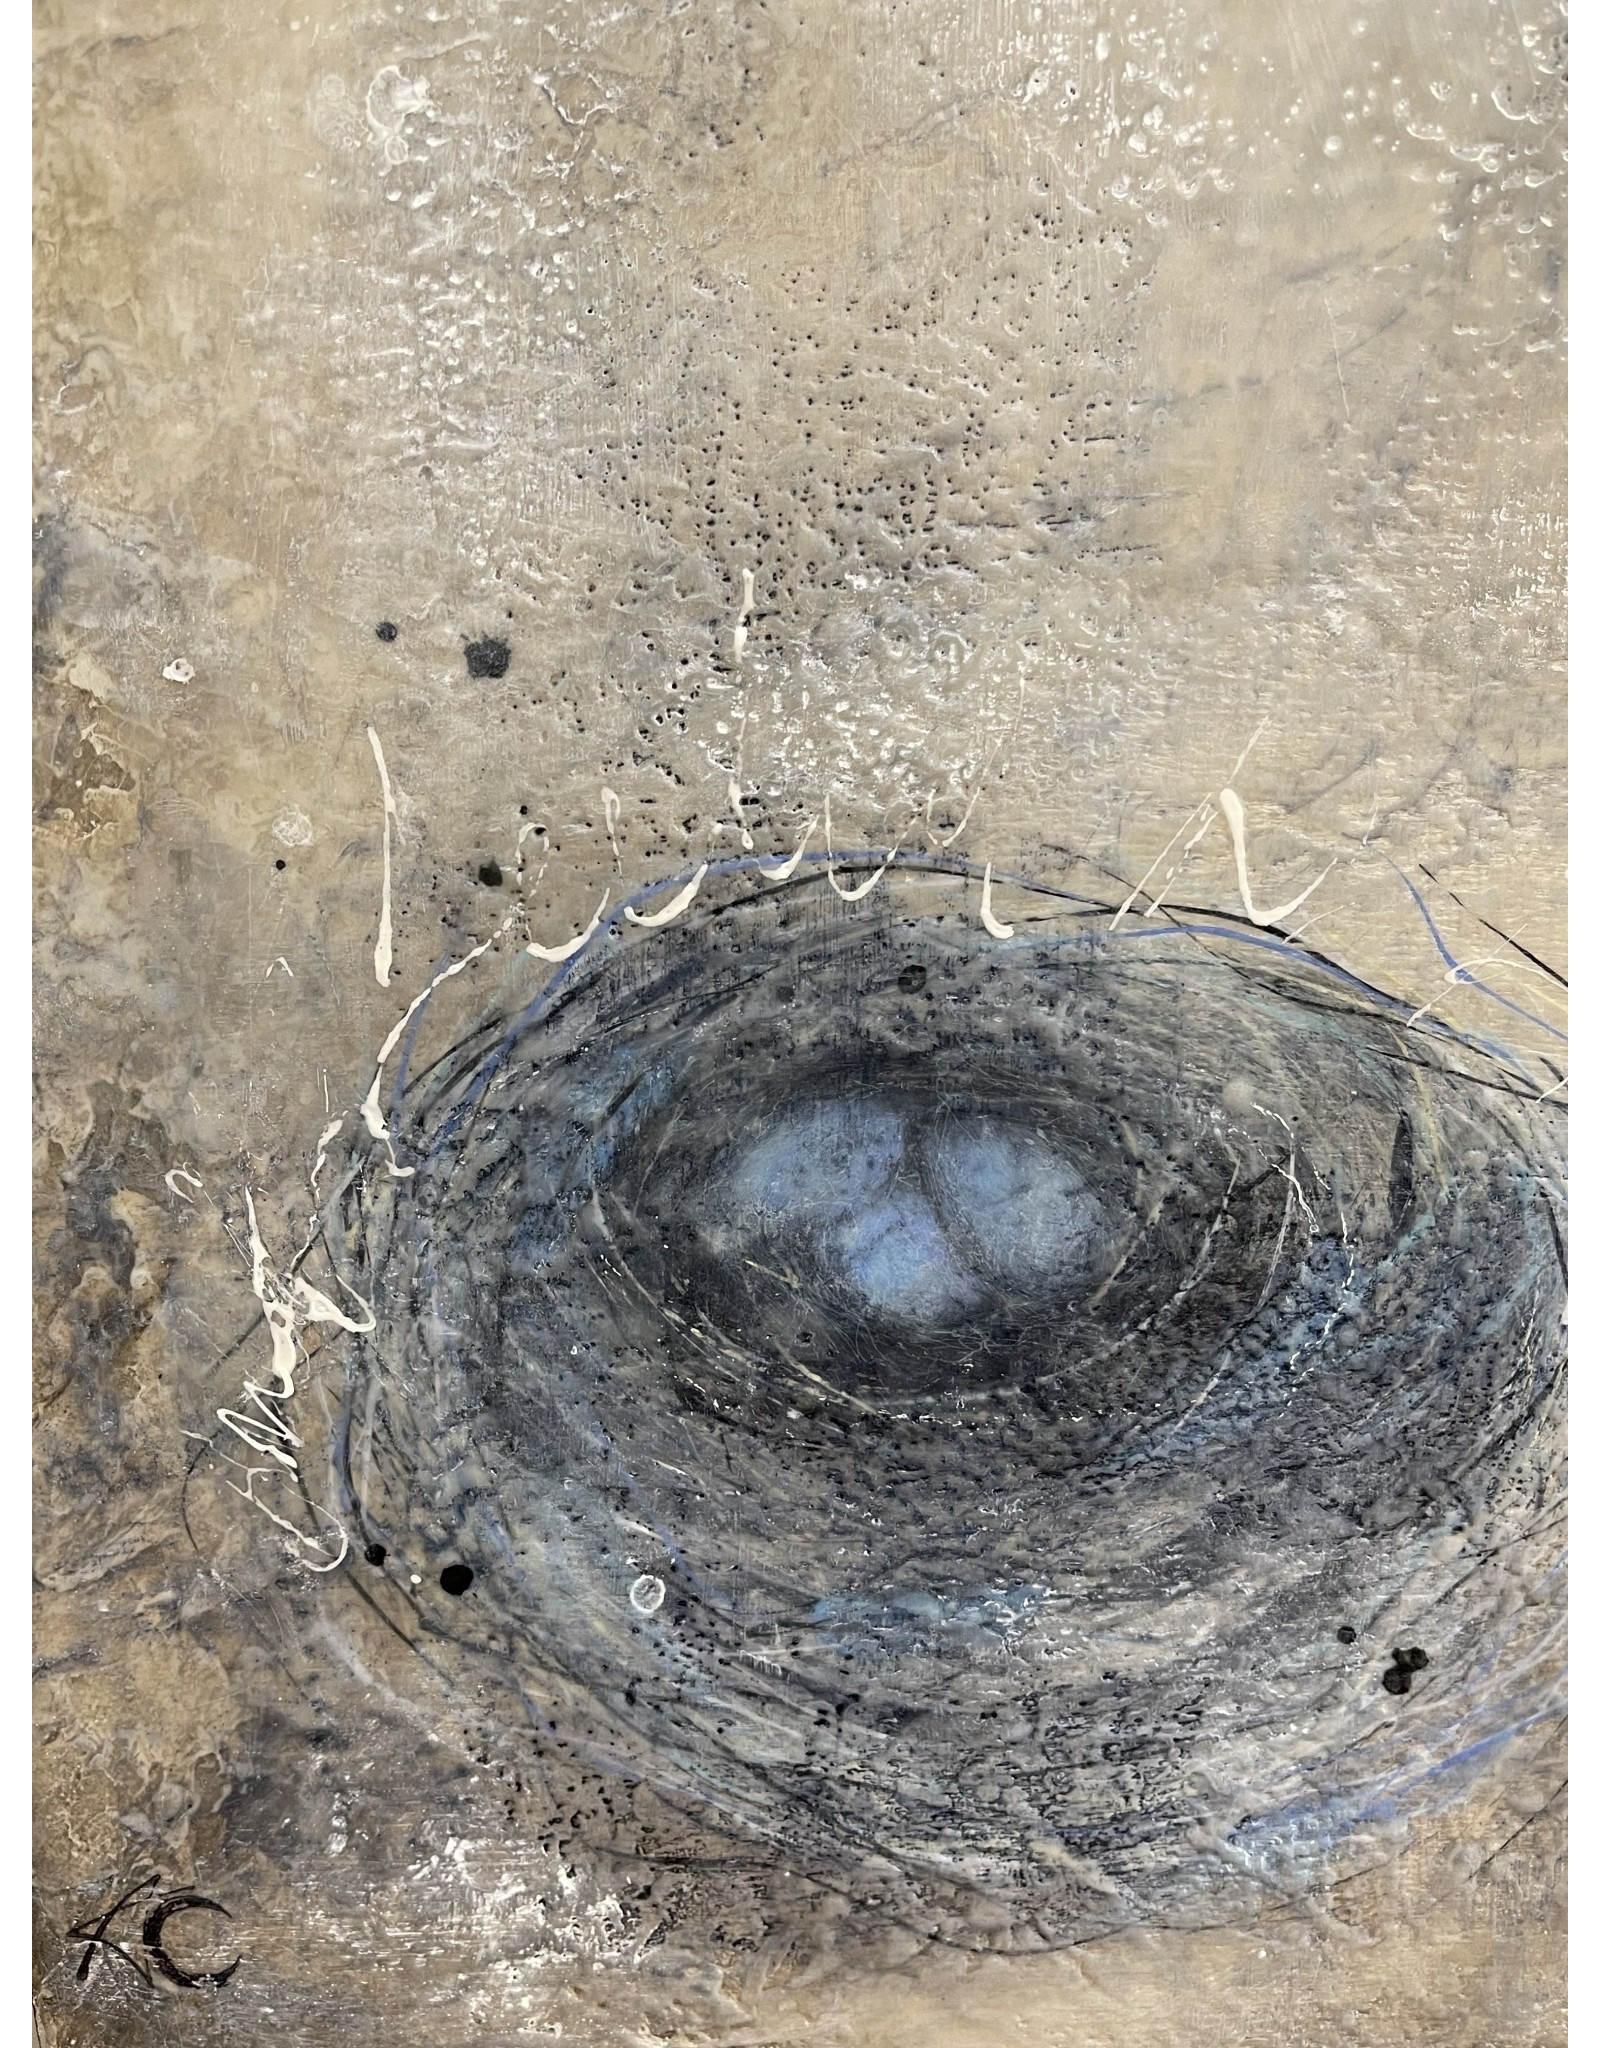 Annette Colby - Painter Love is in the Air - Bird & Nest Encaustic Painting - Annette Colby